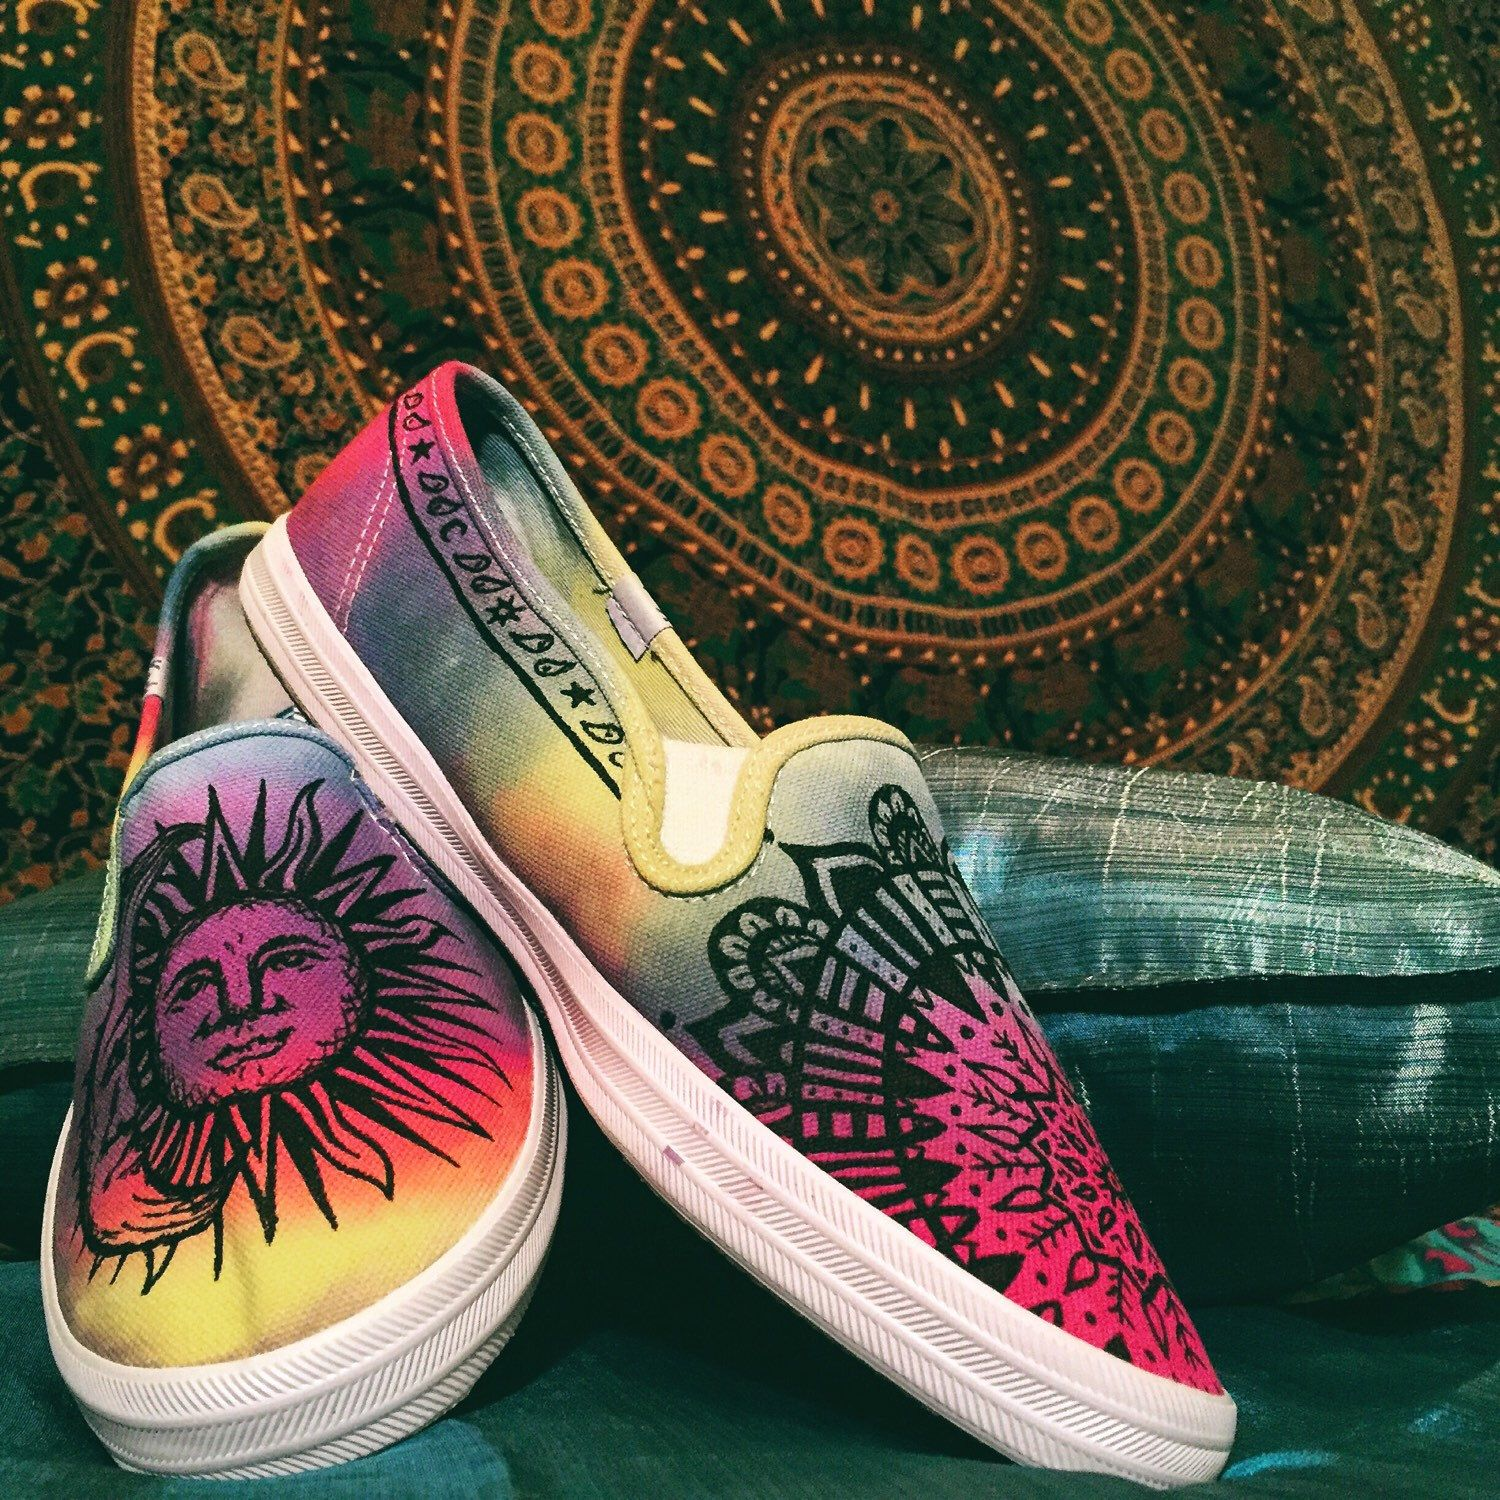 Custom Hand-painted Tie-dye Tapestry Inspired Canvas Shoes by EtsyByVeasey on Etsy https://www.etsy.com/listing/237431644/custom-hand-painted-tie-dye-tapestry